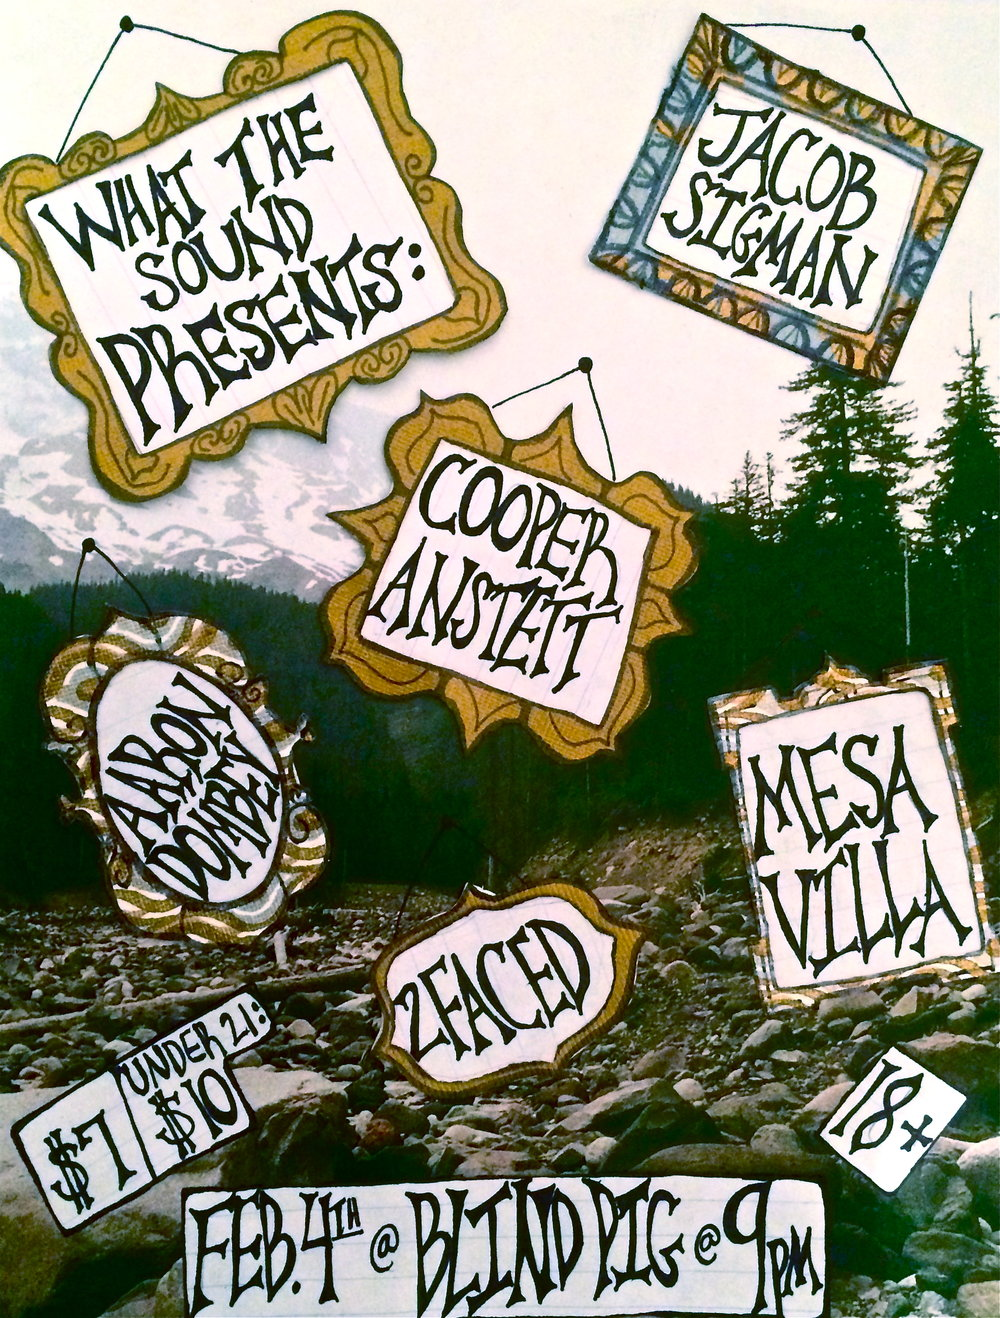 Jacob Sigman / Cooper Anstett / Aaron Dombey / Mesa Villa / 2faced - Artwork by Hayden Sitomer  February 4, 2016 at Blind Pig